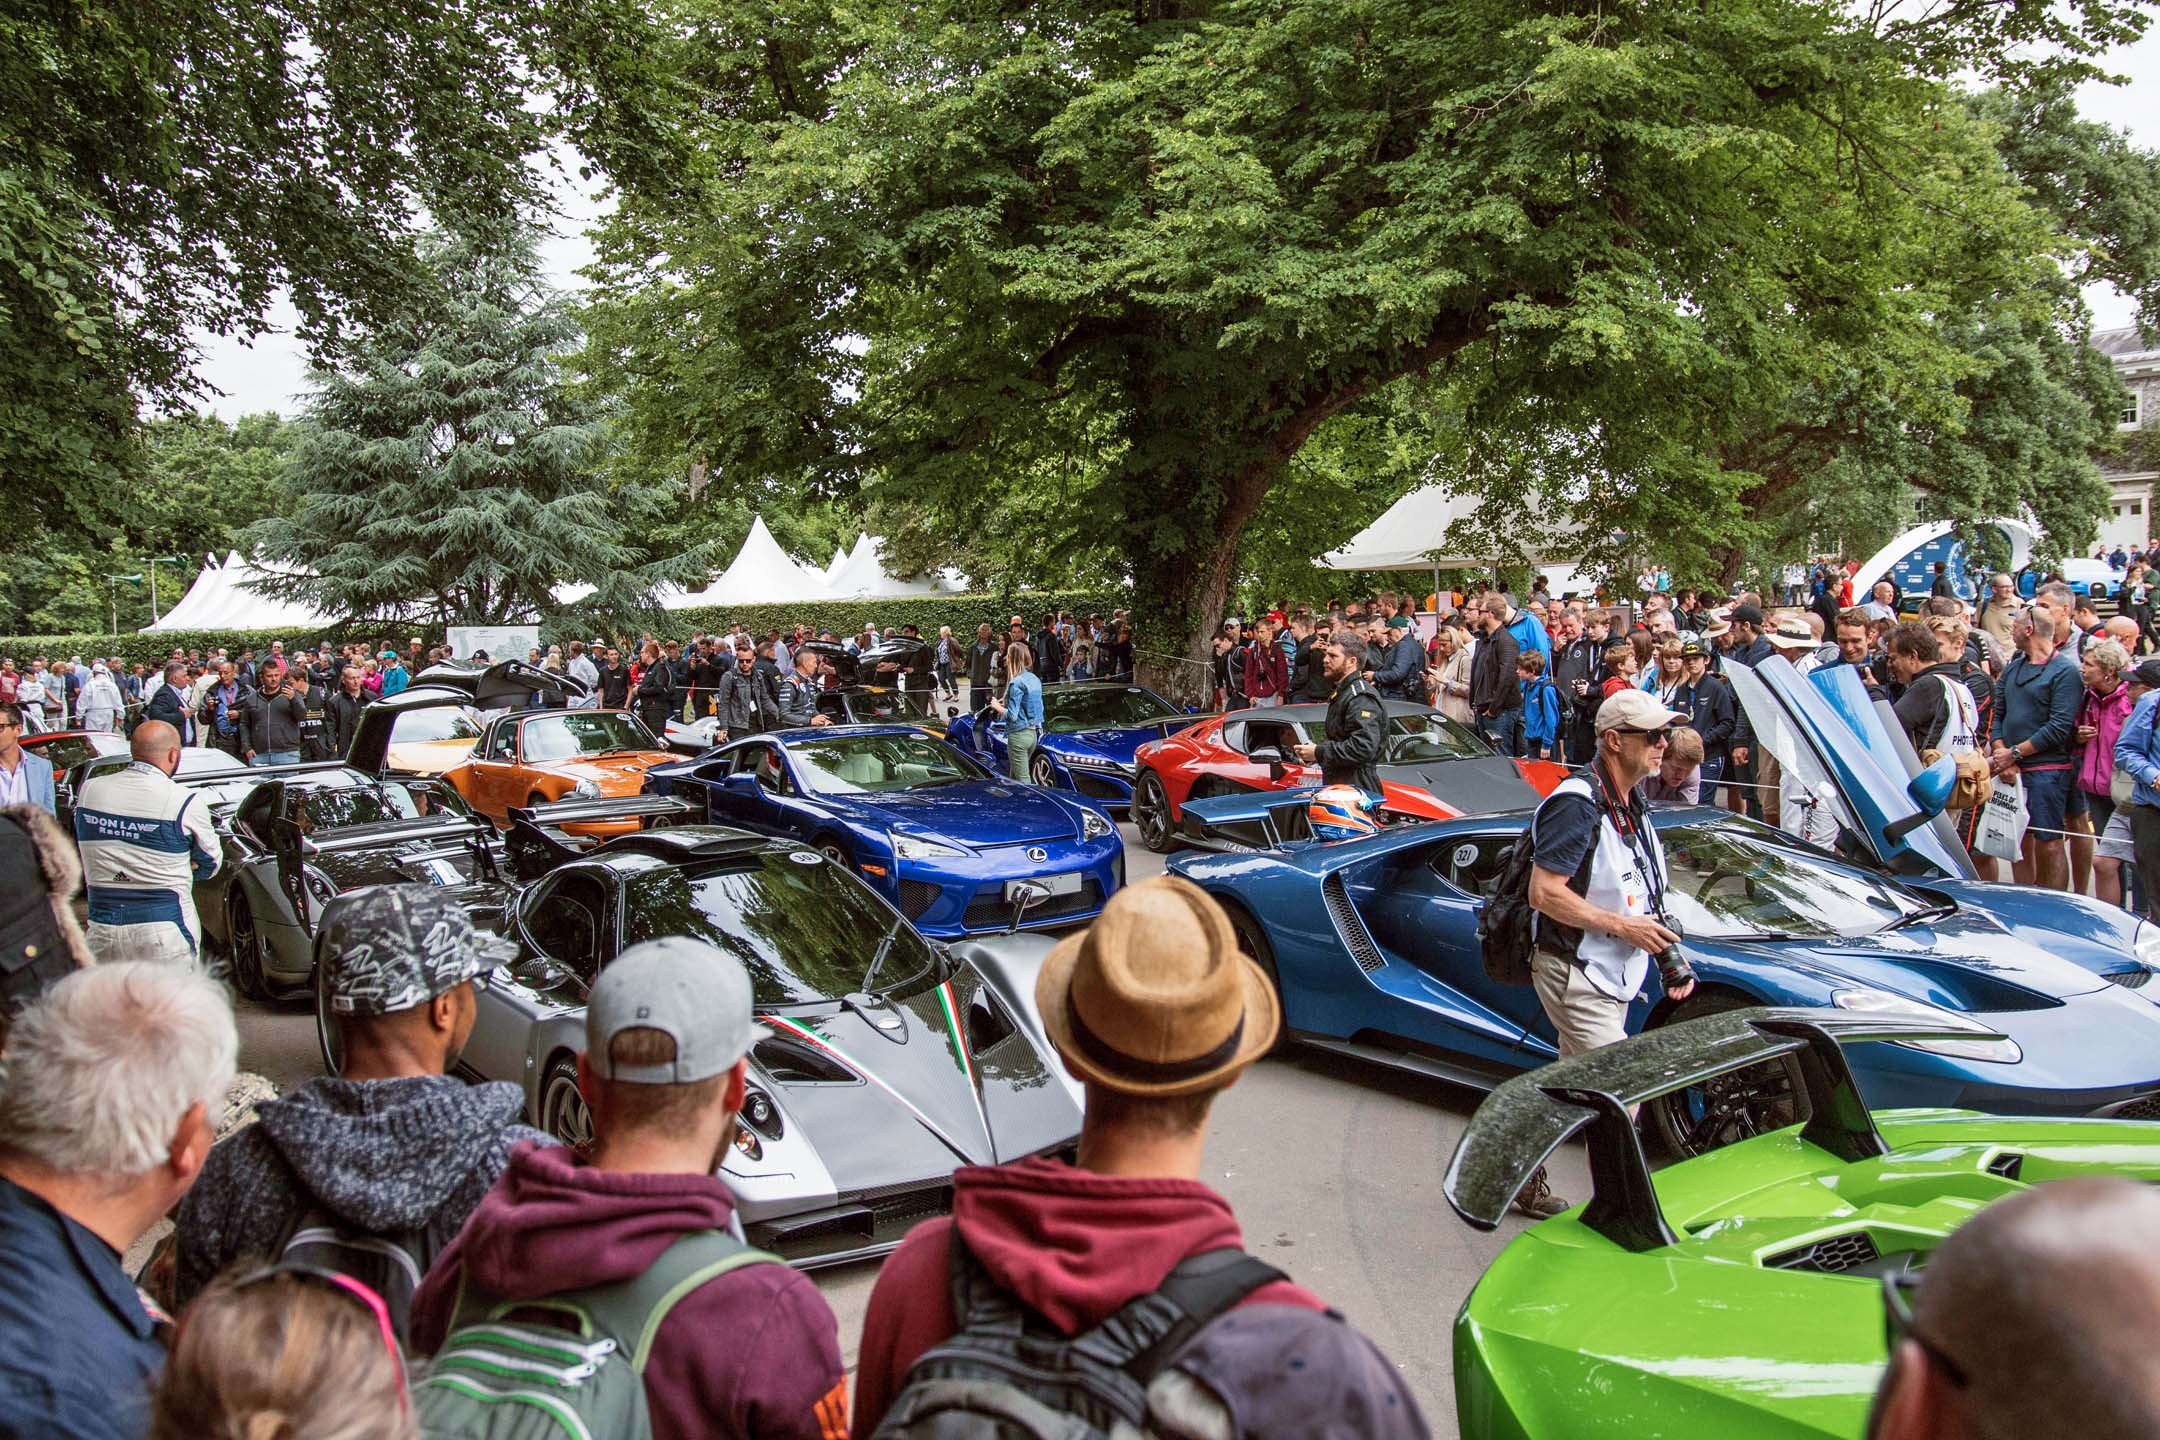 Gathered in the pre-staging paddock, all manner of supercars jostle for position. While a low time up the hill doesn't come with an official FIA trophy, it's certainly bragging rights for both the driver and the machine.